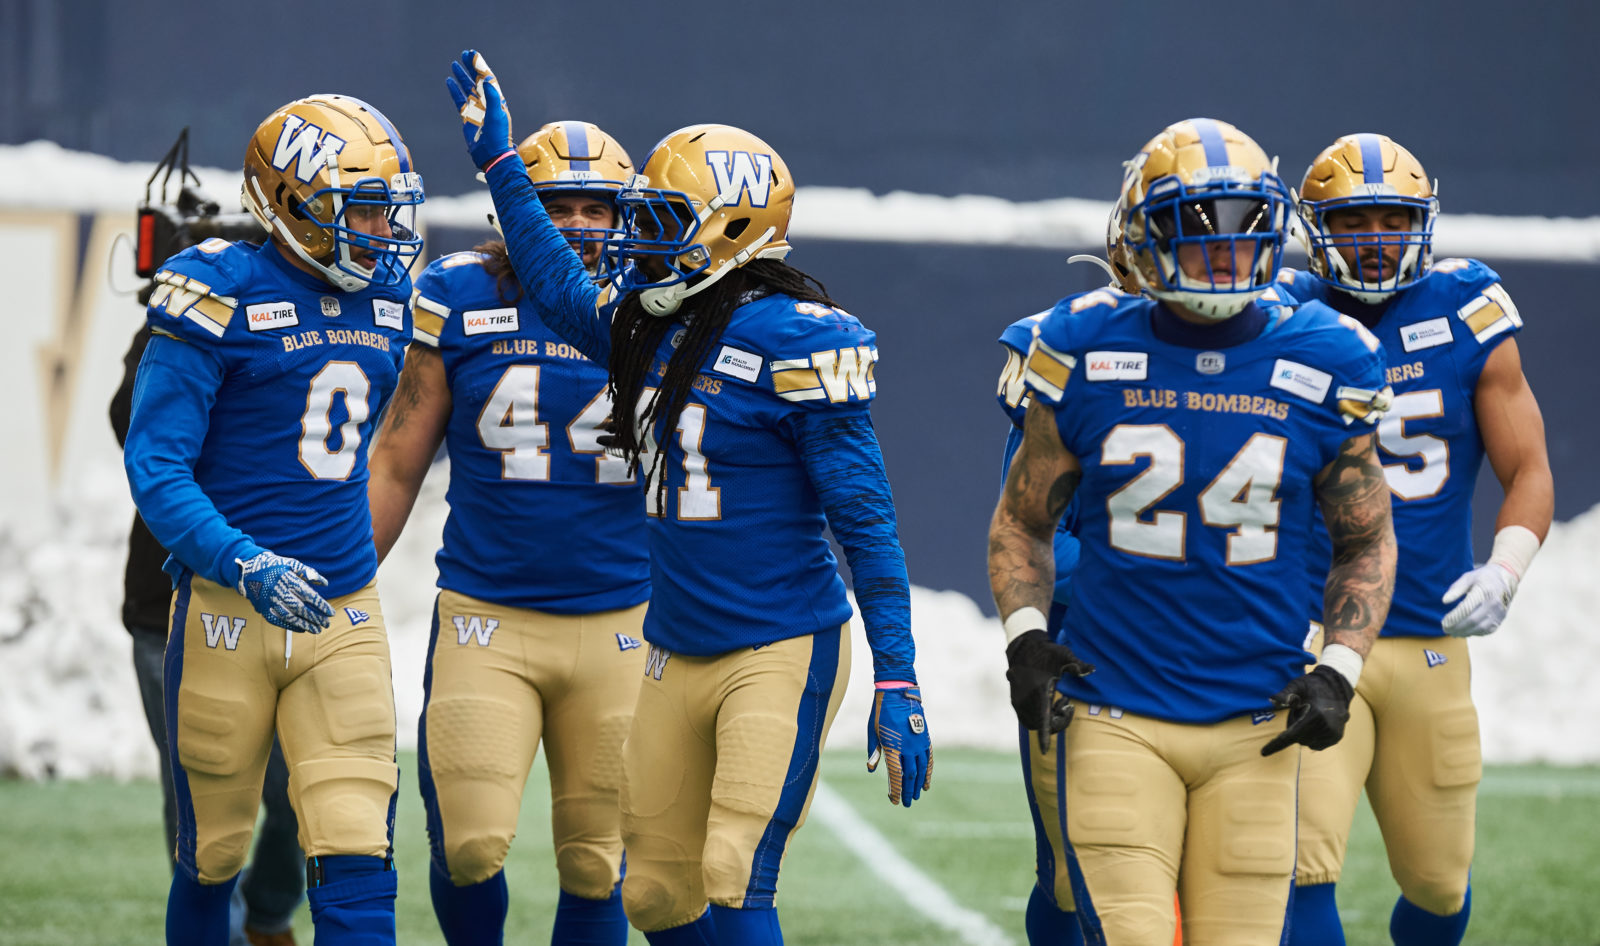 Upon Further Review | MTL 24 WPG 35 - Winnipeg Blue Bombers